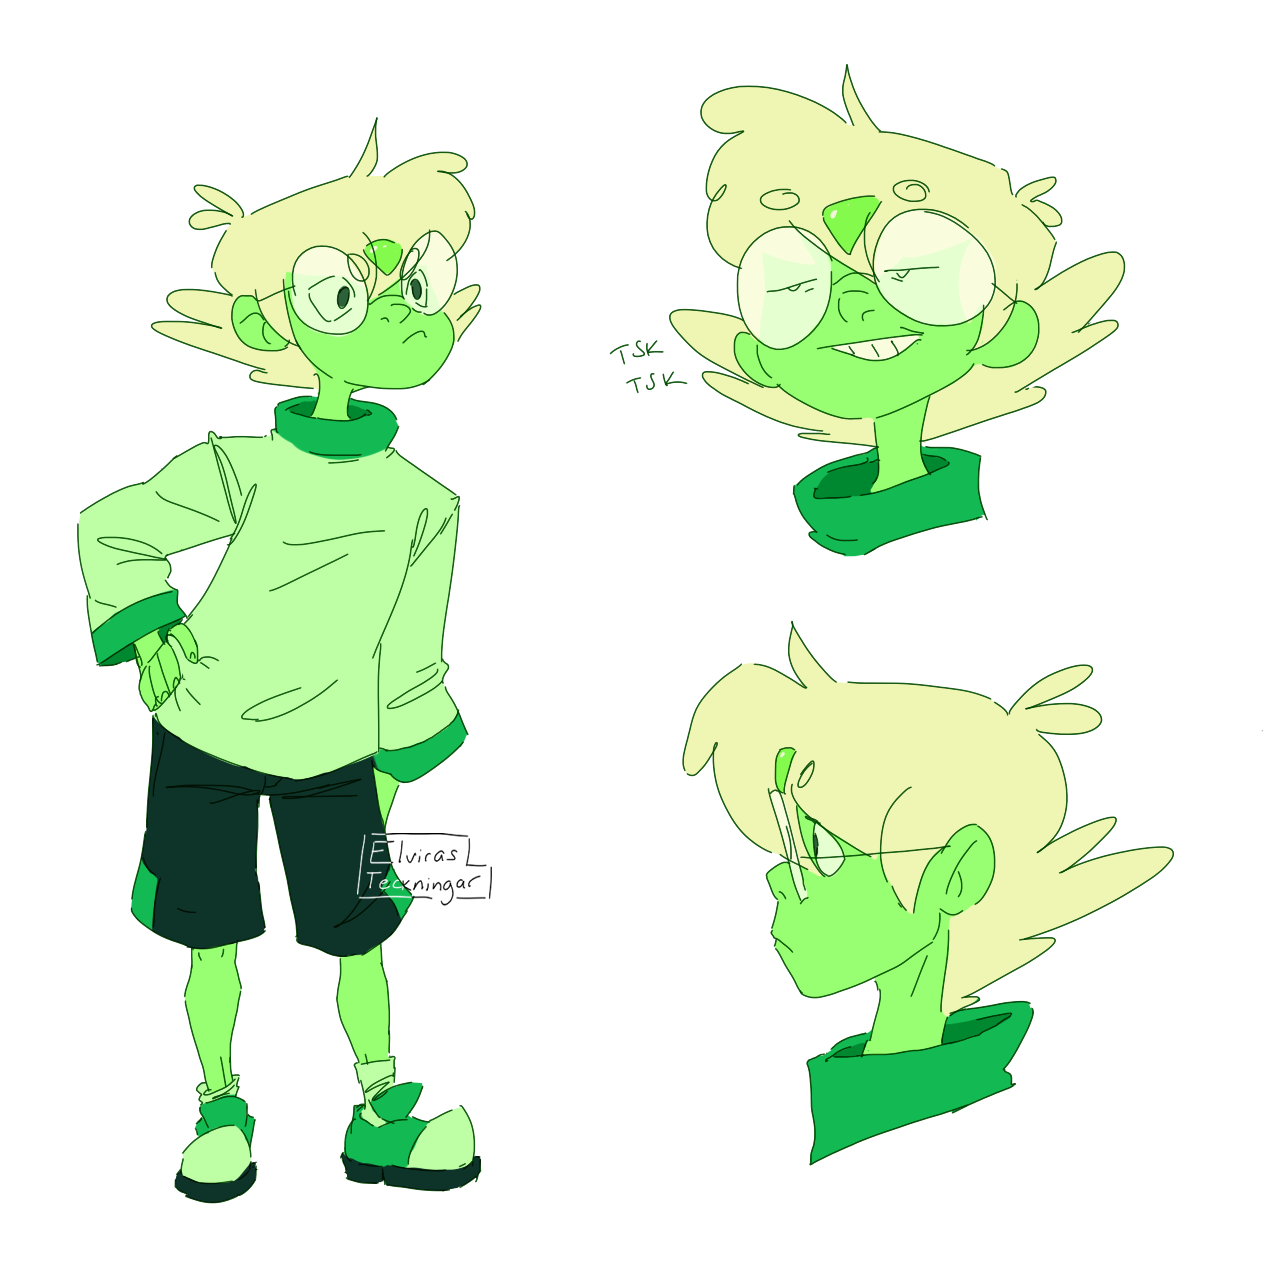 a quick Peri!Pidge redesign! I wanted Pidge's hair to be more stylized and I really like how it came out. Now it's actually fun to draw them